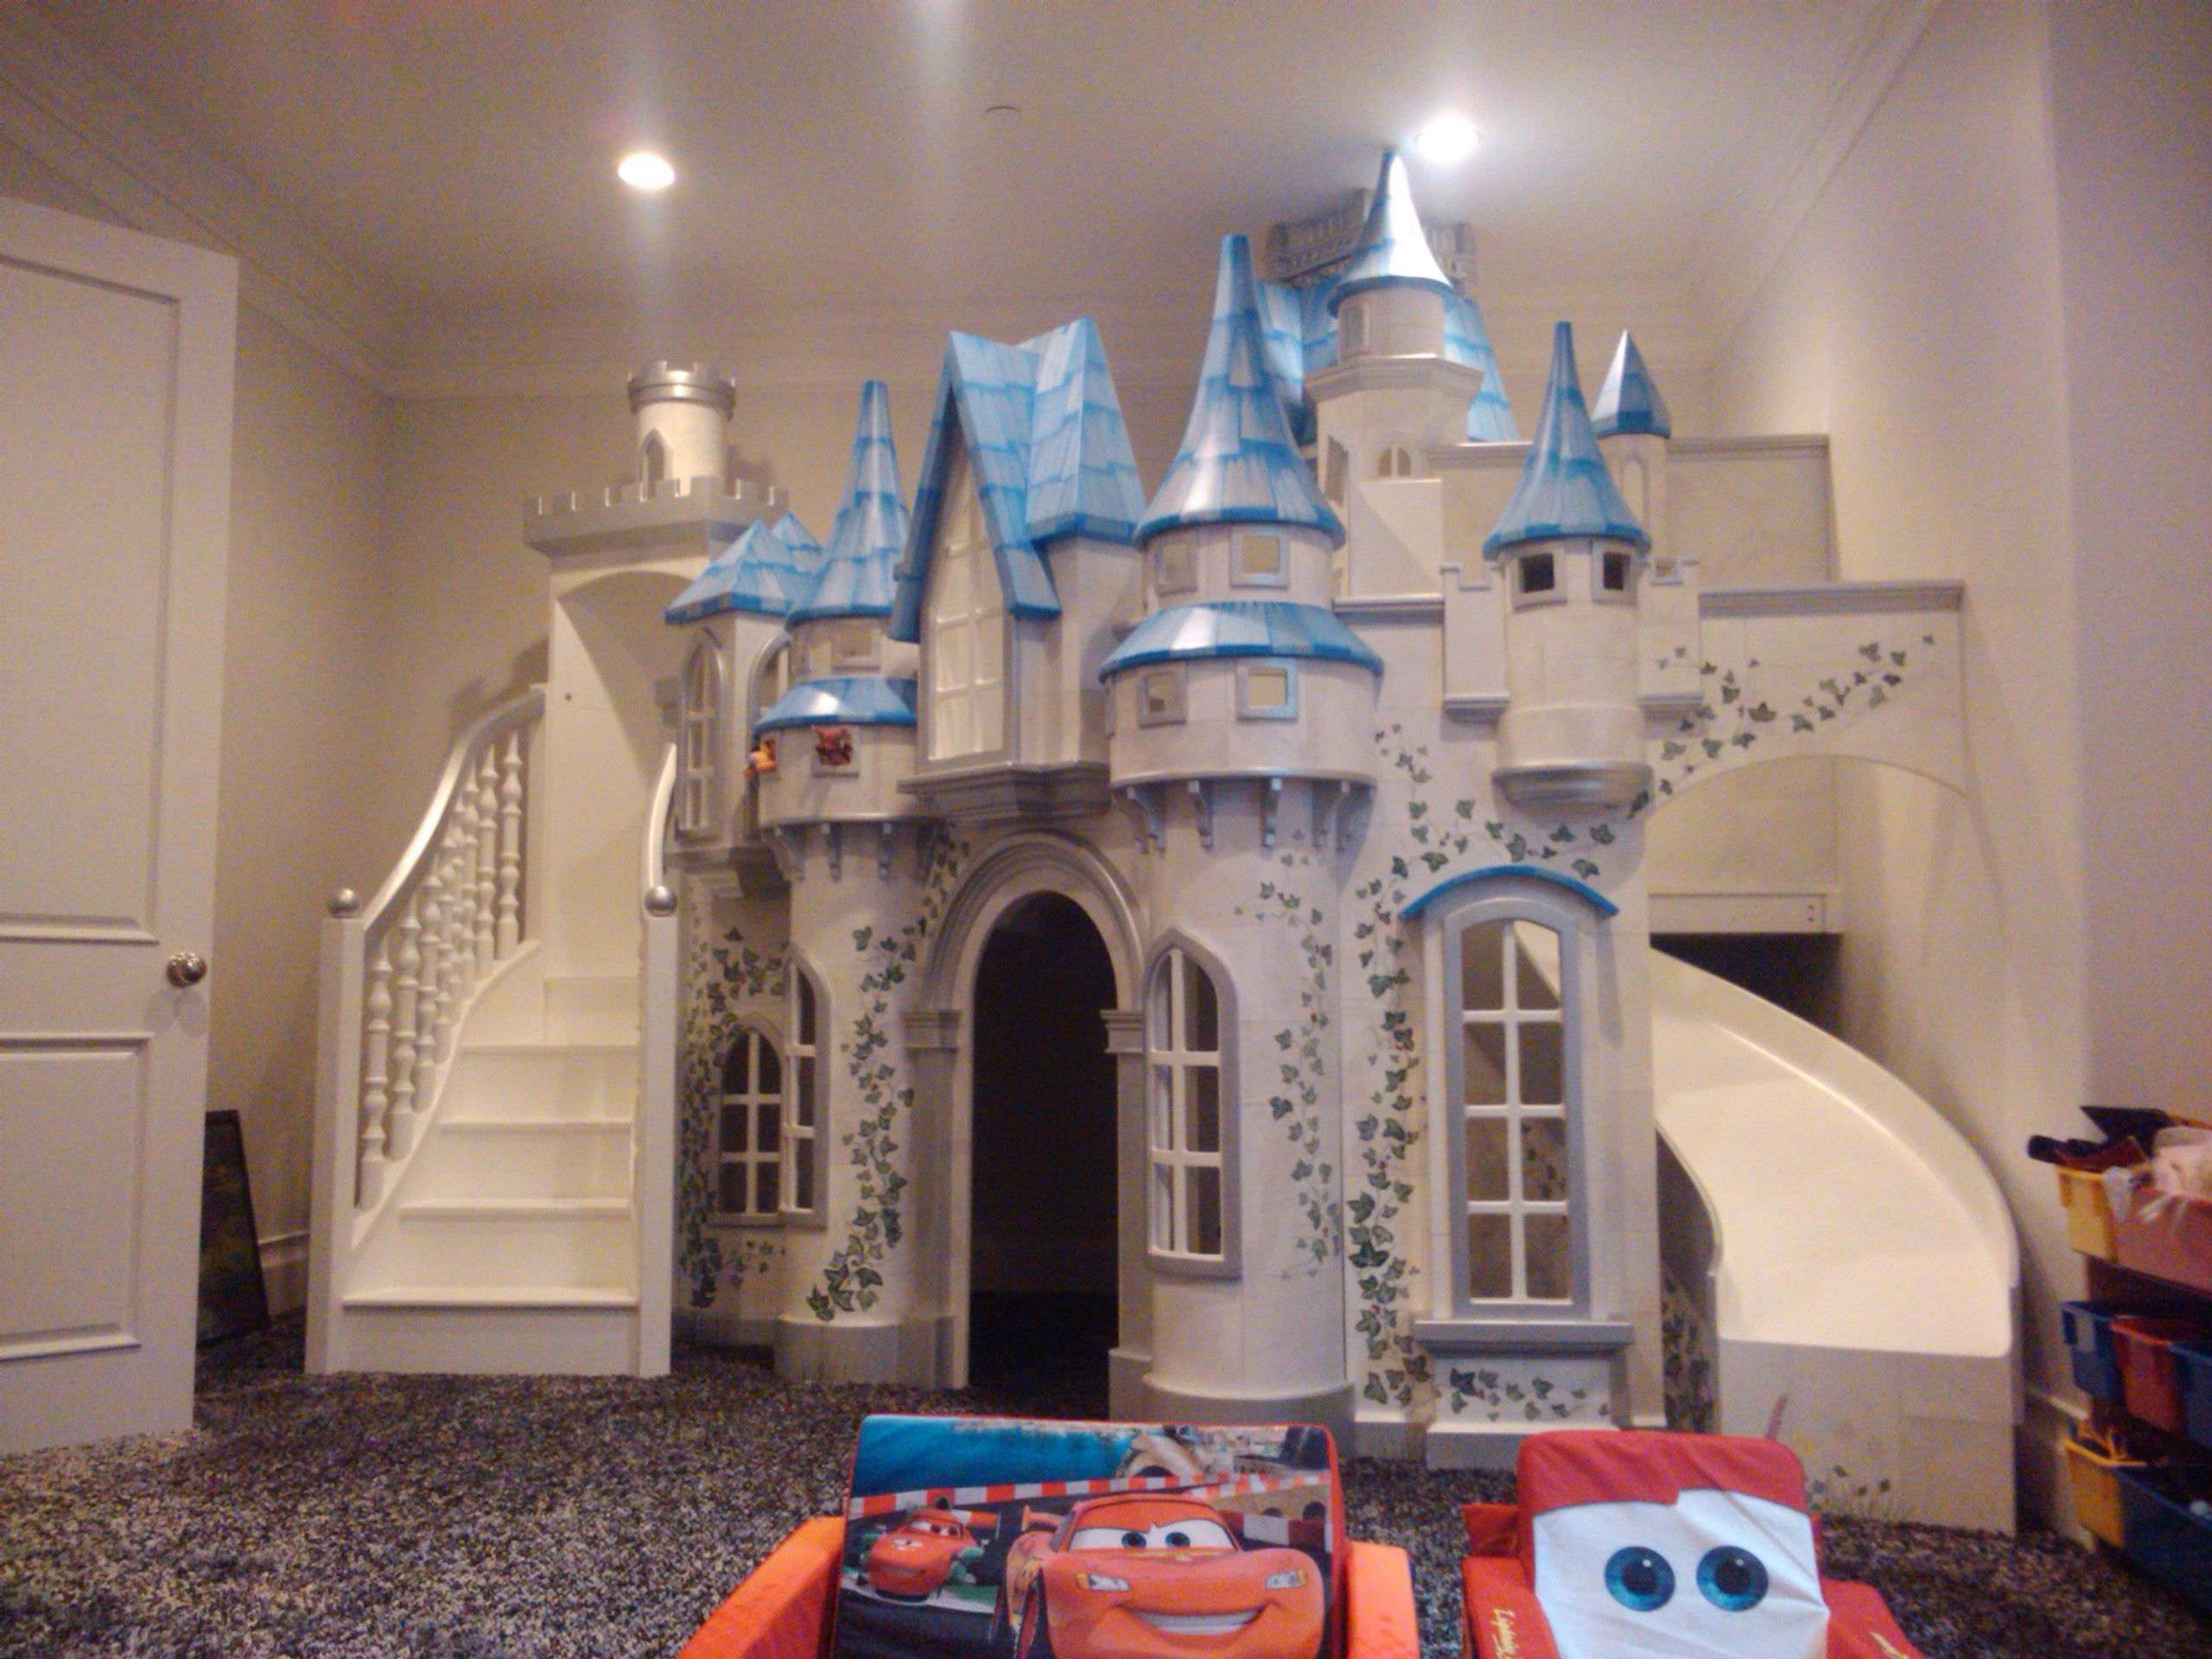 Rooms: Check Out This Incredible Princess Castle!